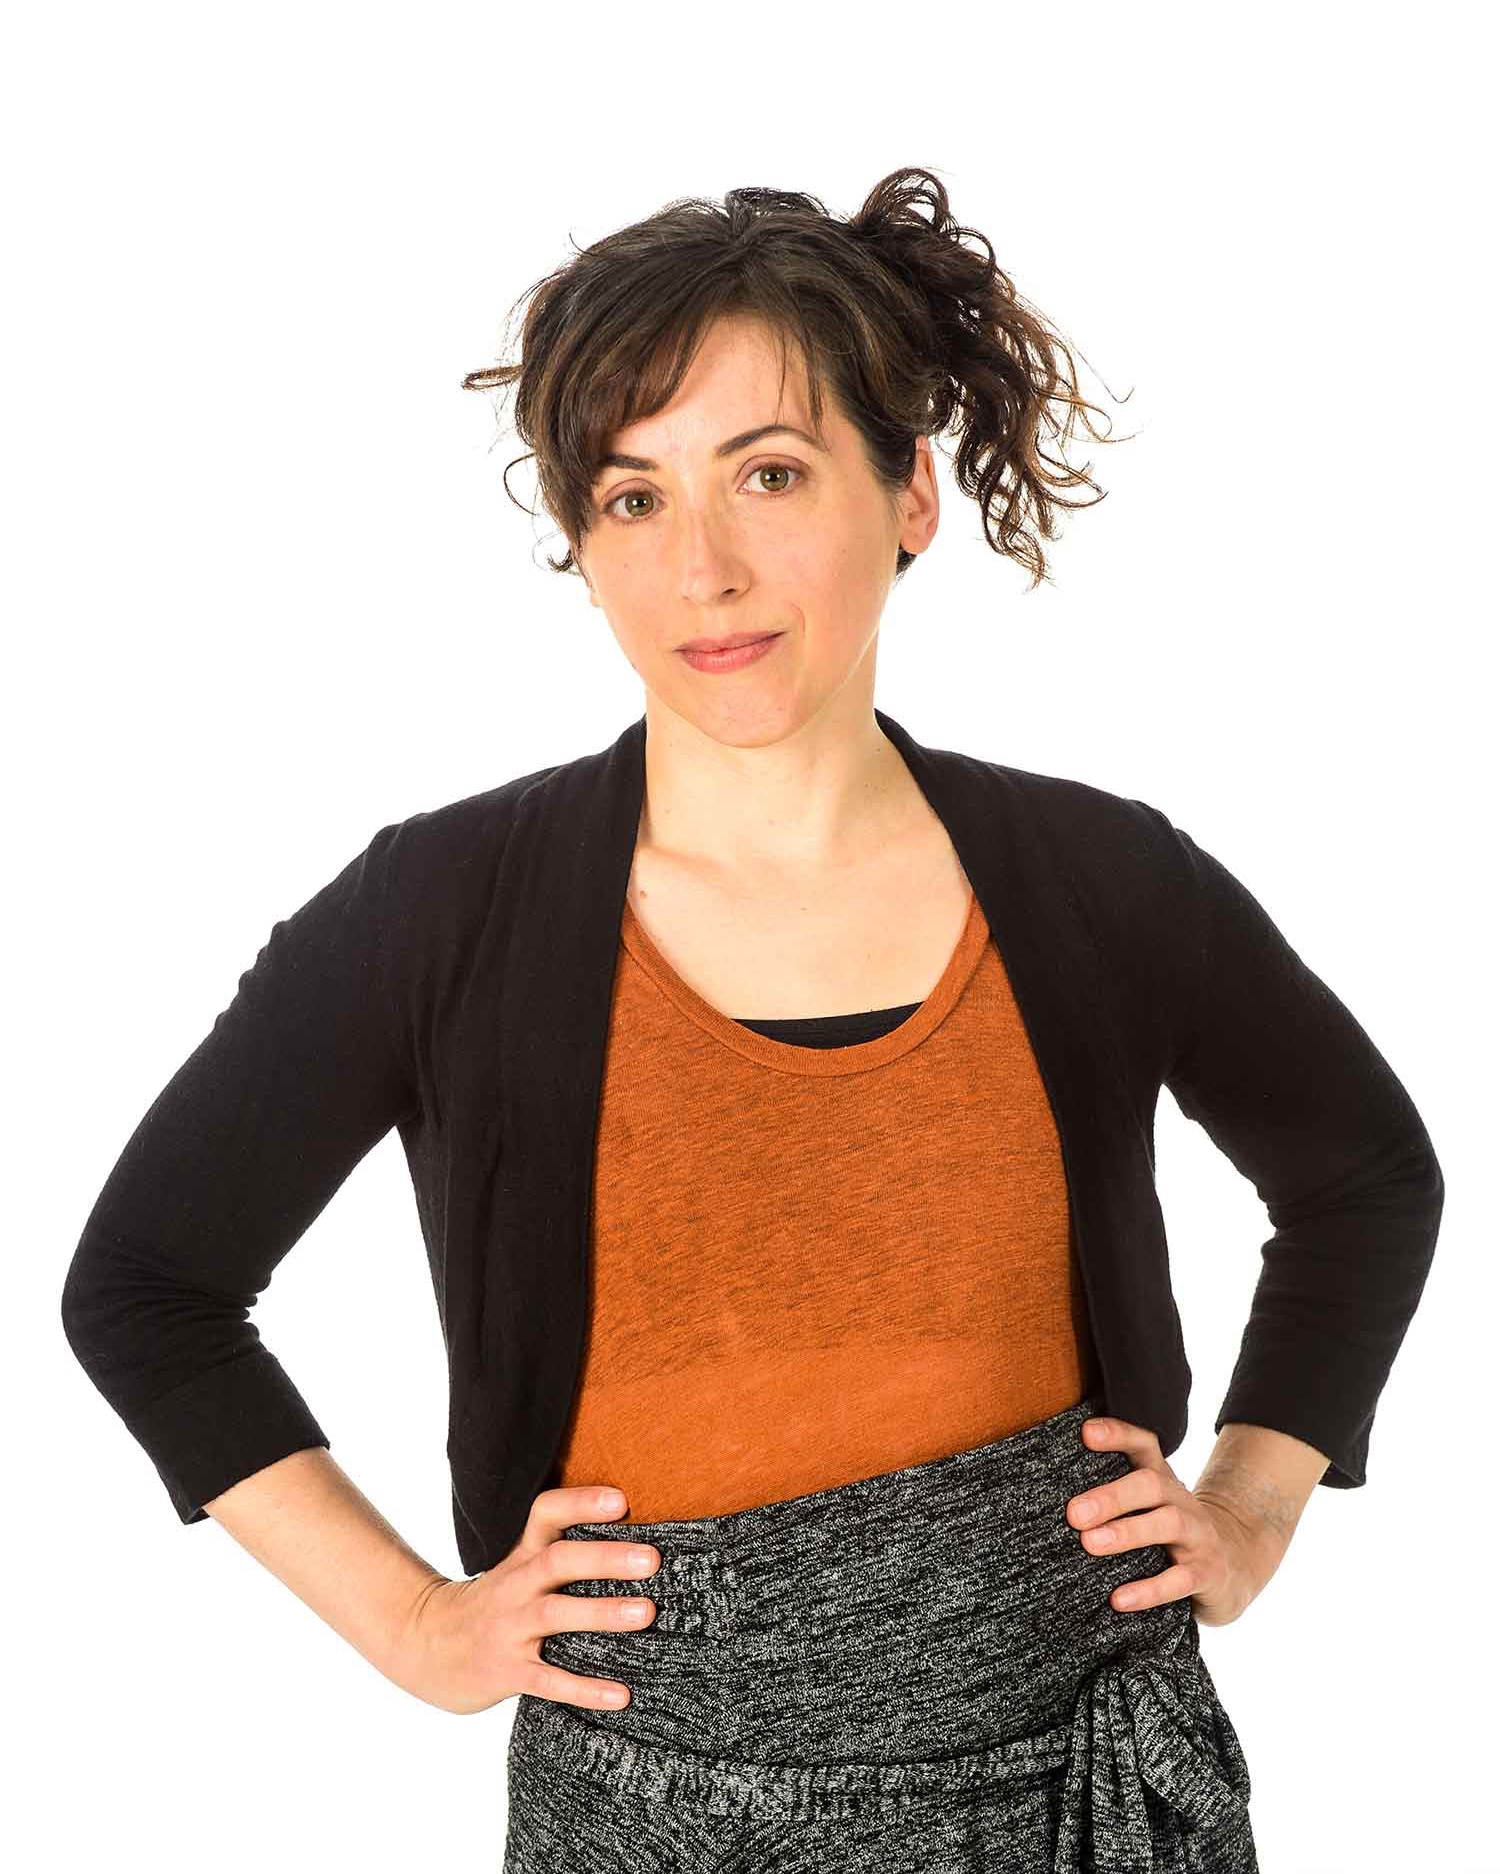 Amanda standing with hands on hips - hair is up, black sweater, rust top, grey skirt.